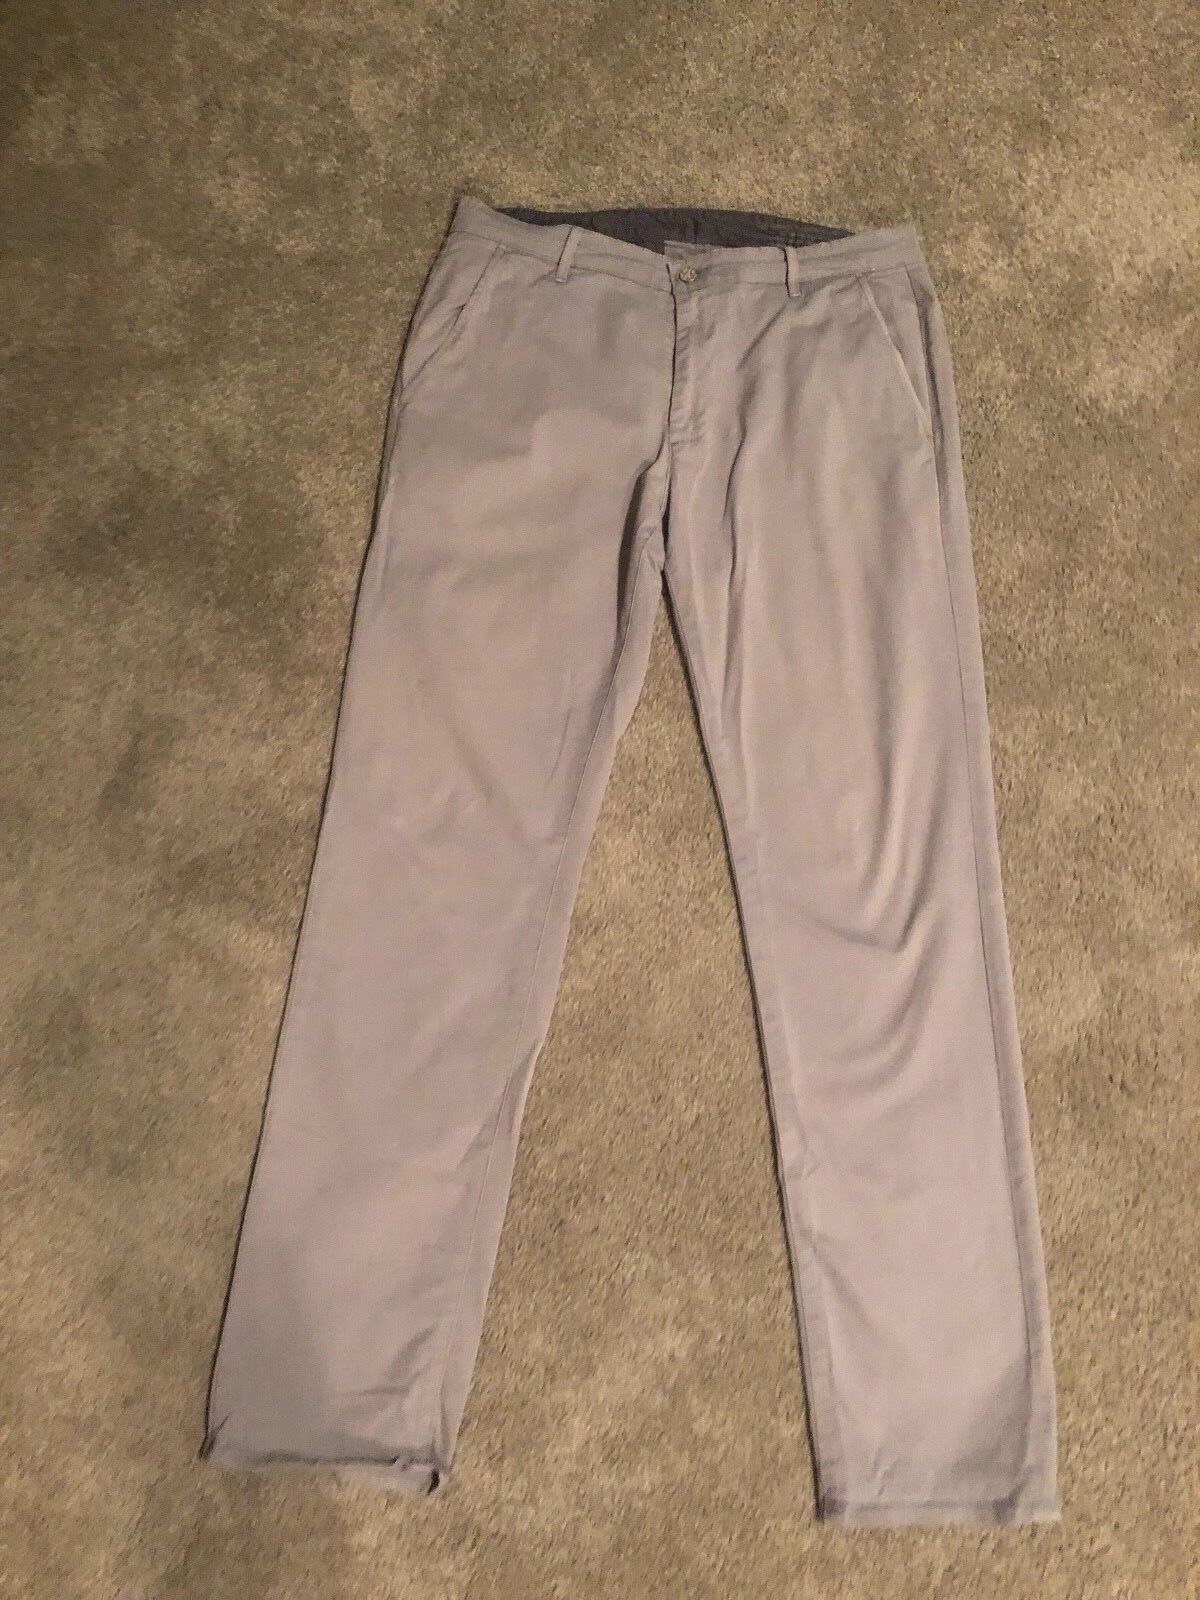 Men's AG Supply Adriano goldschmied Khaki Pants Straight Leg 34 x 34 Grey